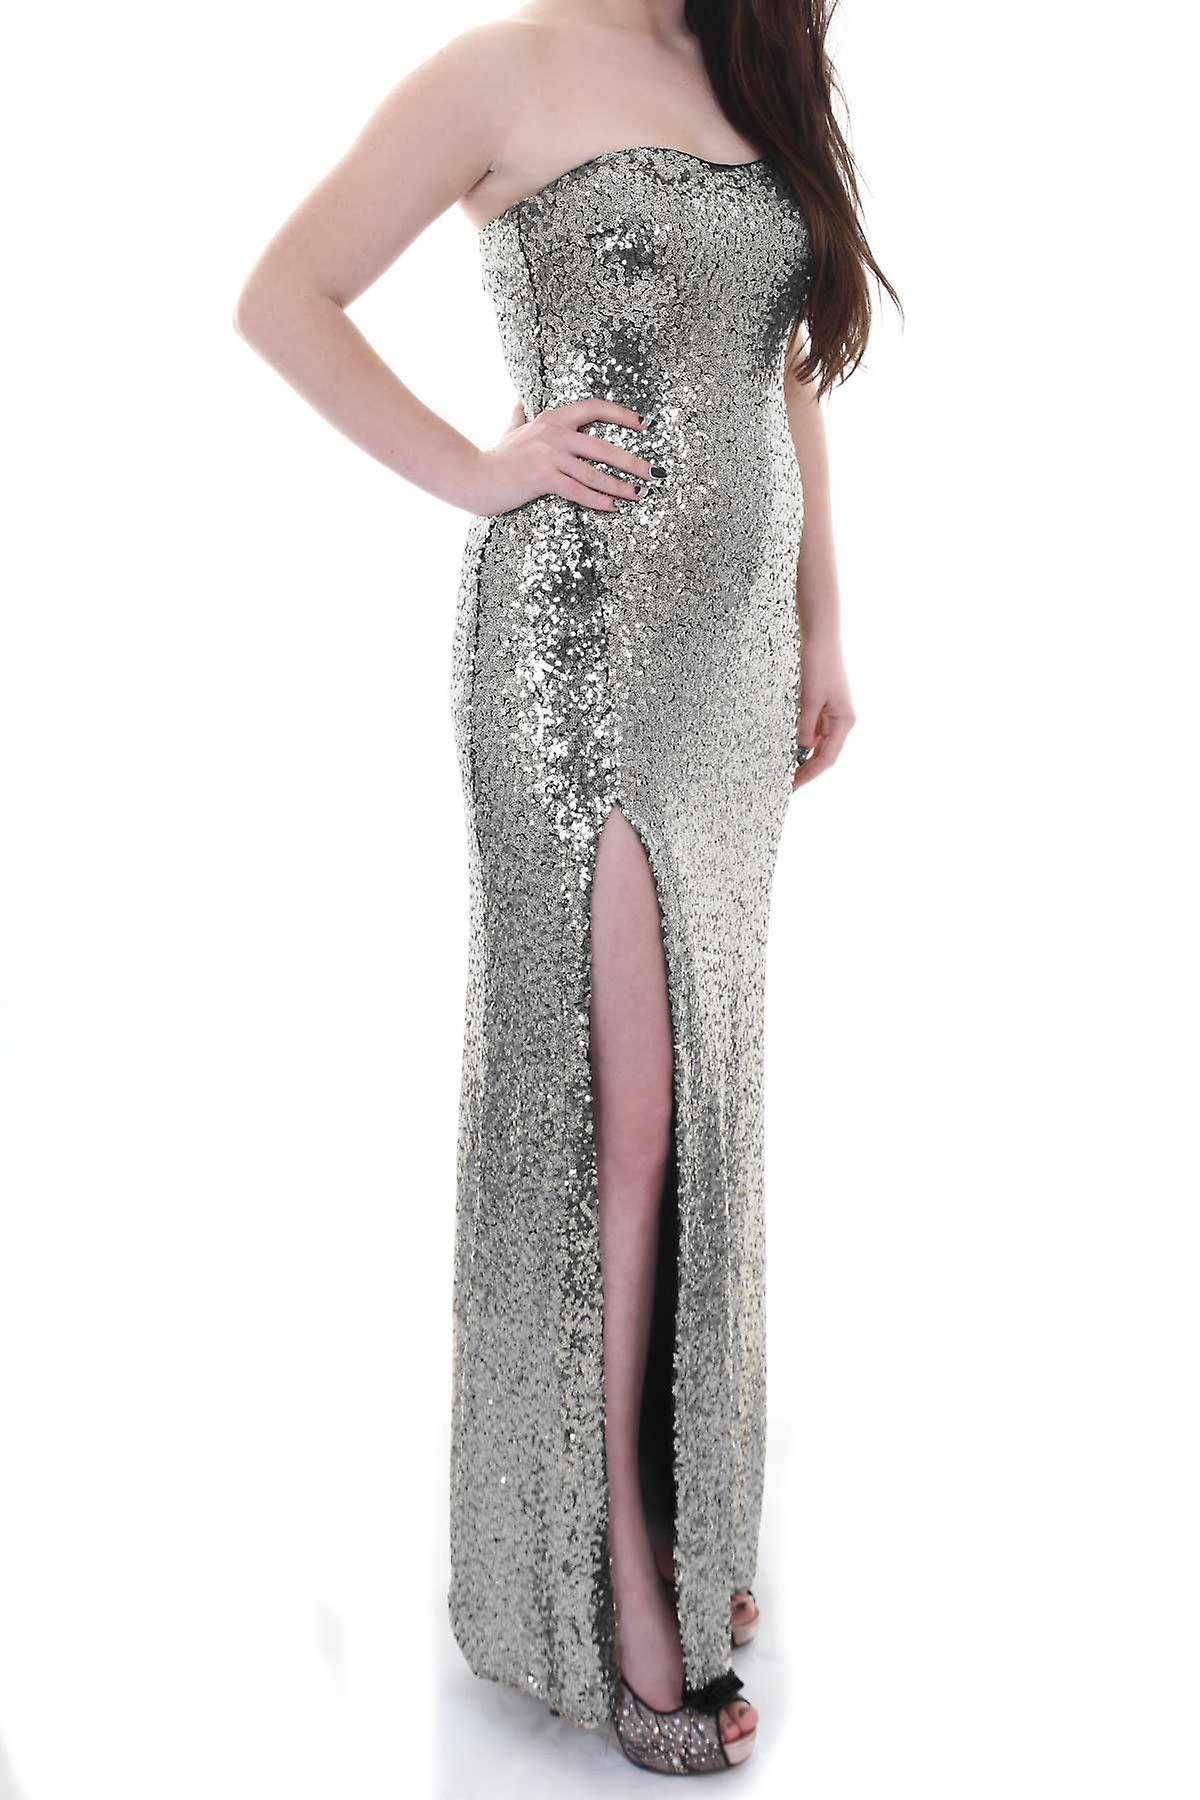 Ladies Celeb Amy Childs Inspired Sequin Side Split Boobtube Women's Maxi Dress